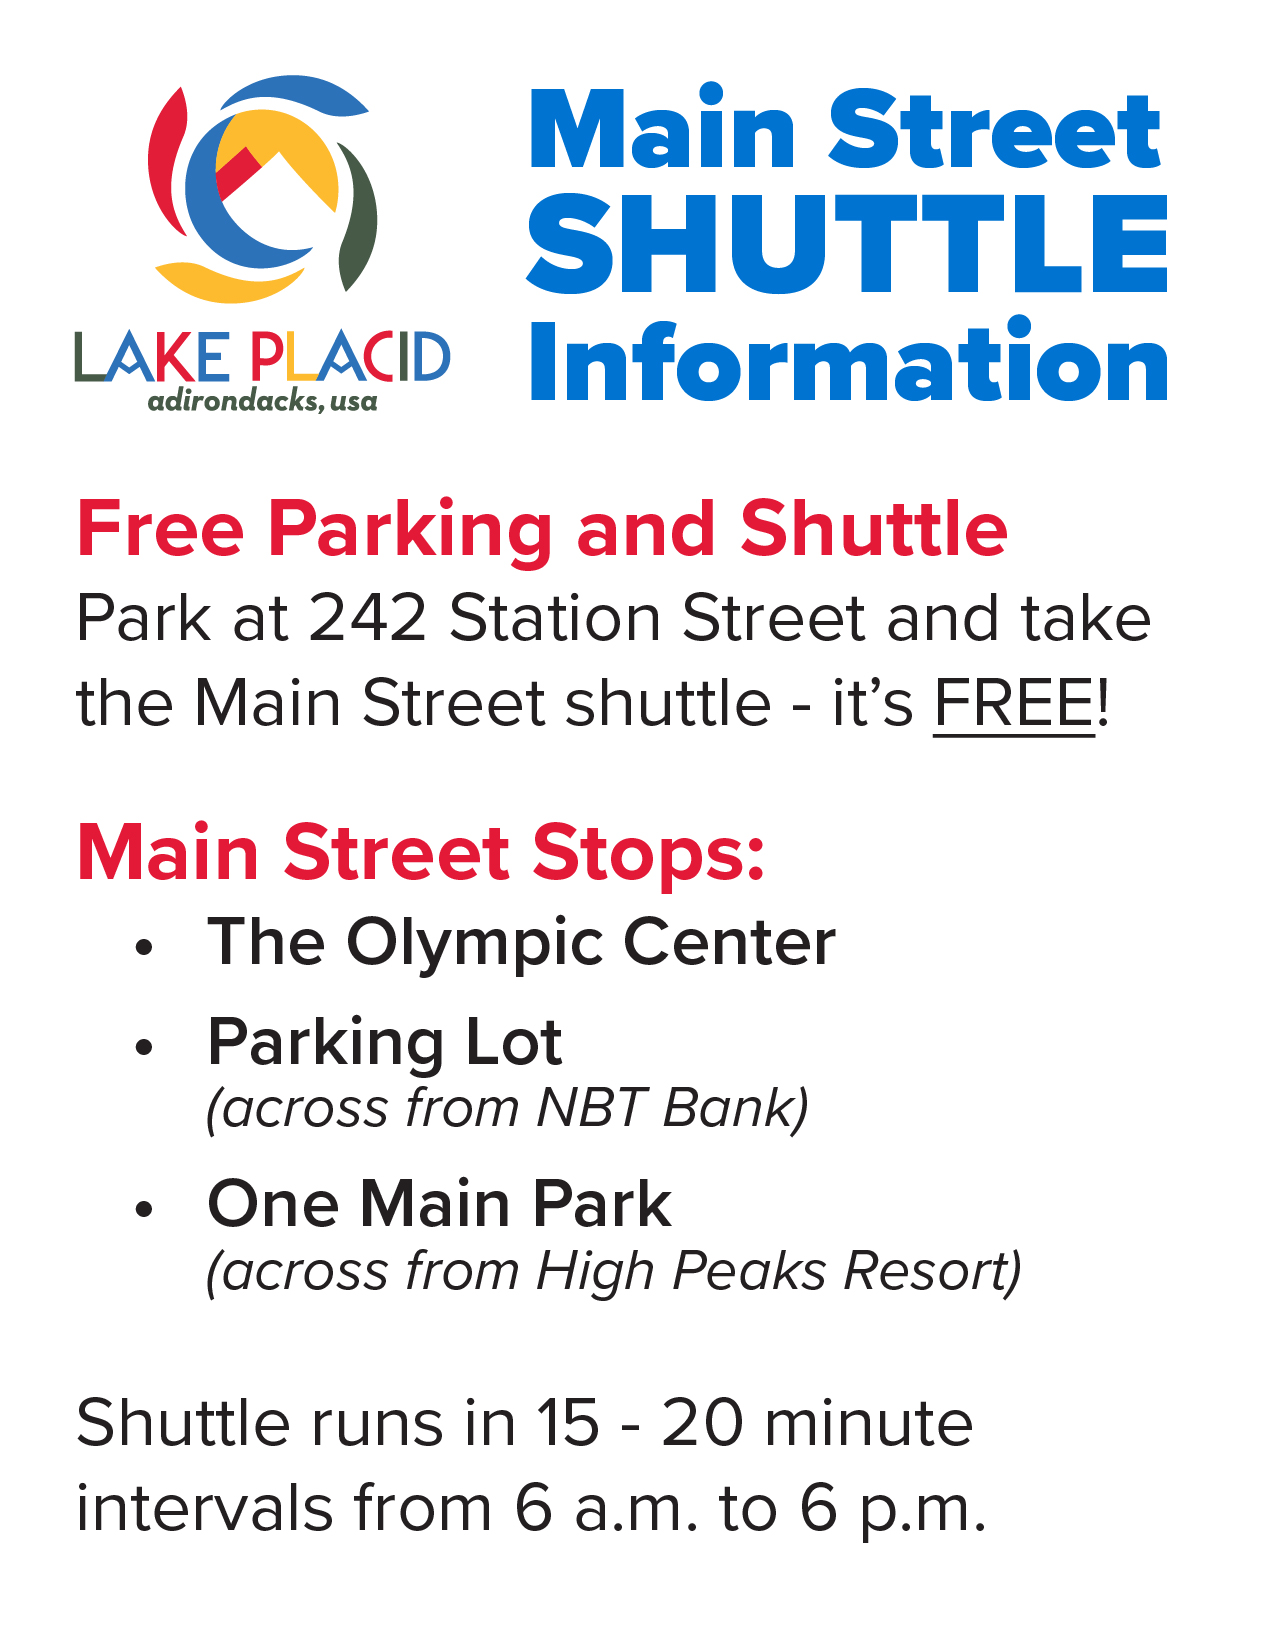 Main Street Shuttle Information Print Out